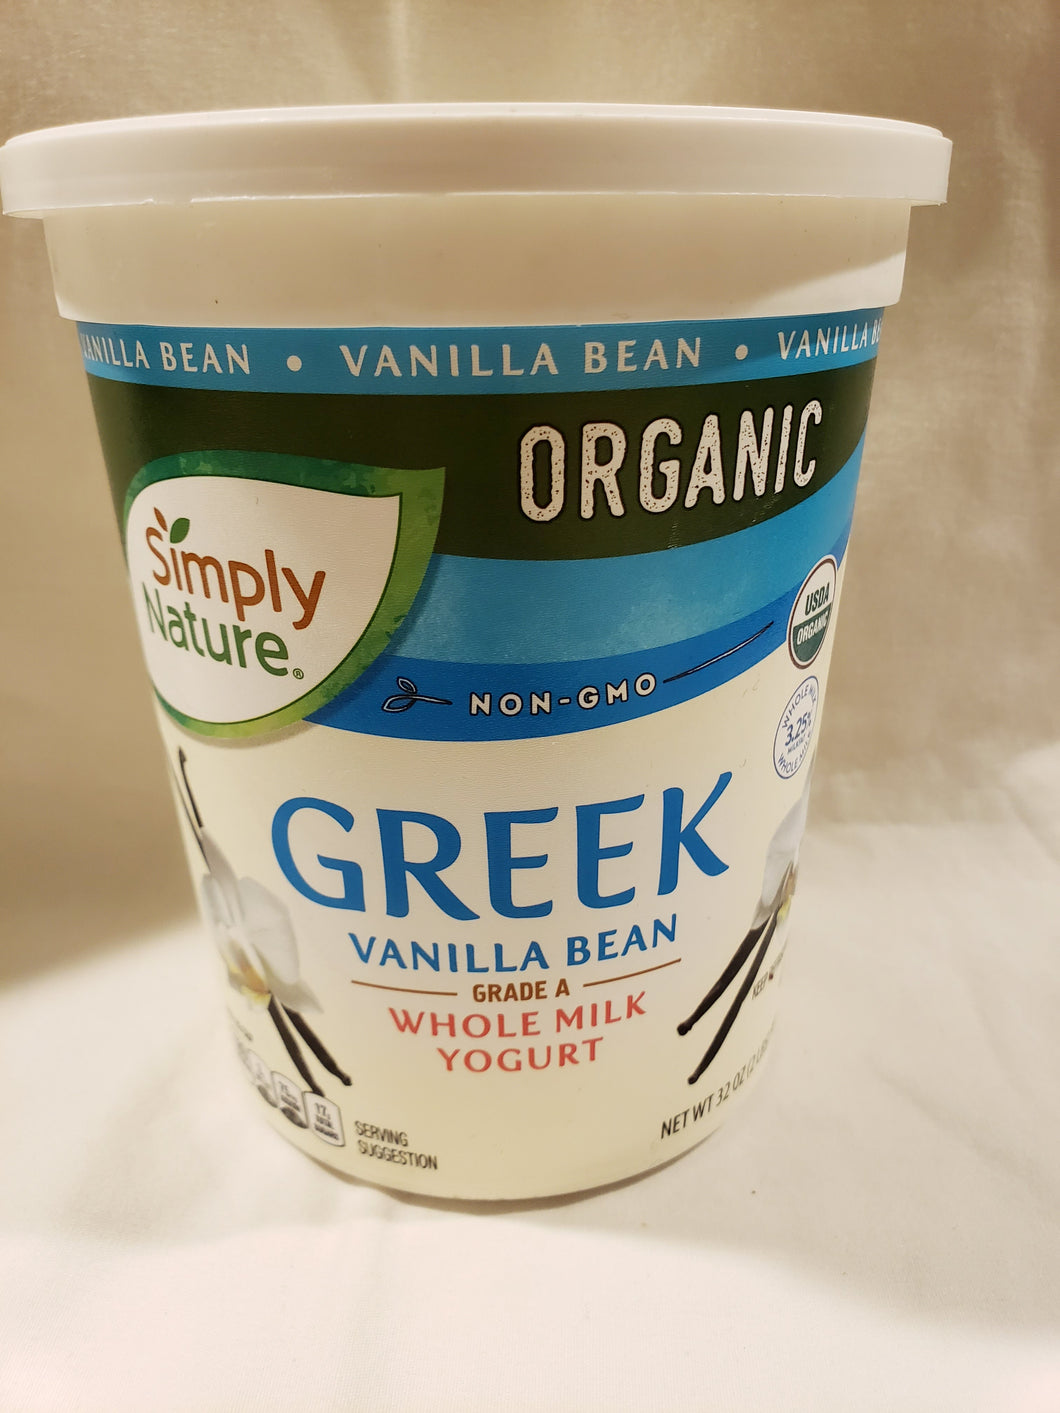 Dairy, Yogurt, Vanilla Bean,  Organic, Whole Milk, Non-GMO (32oz)